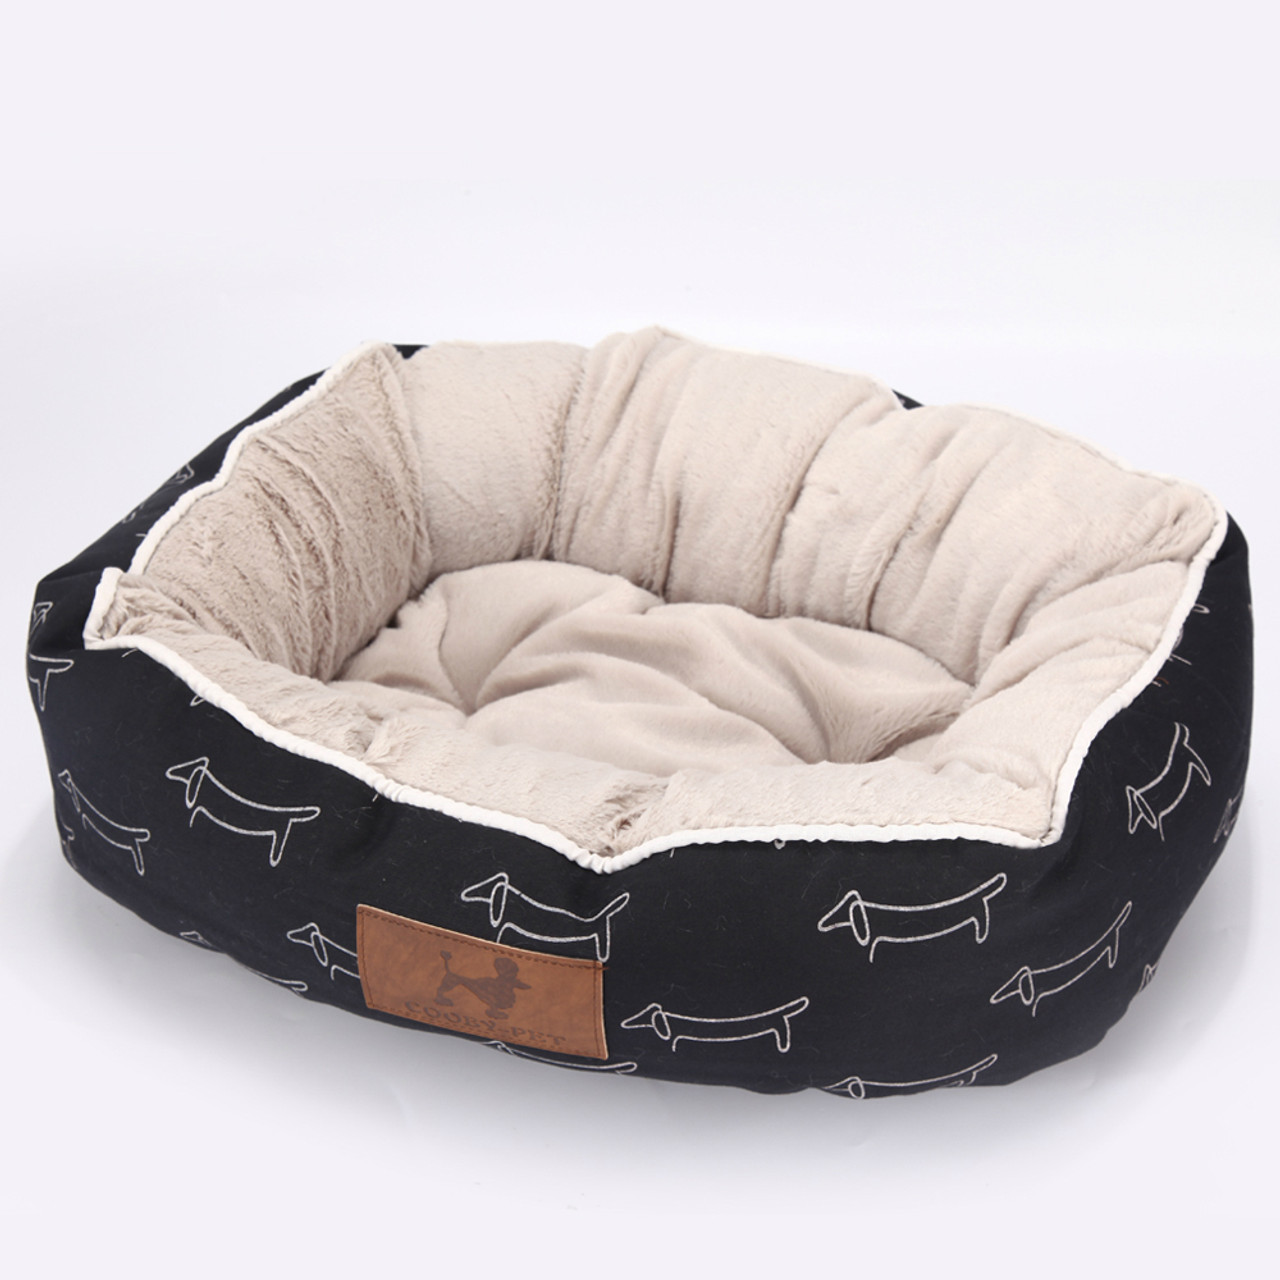 Dog Beds Pet Black Puppies Pet Bed For Animals Dog Beds For Large Dogs Cat House Dog Bed